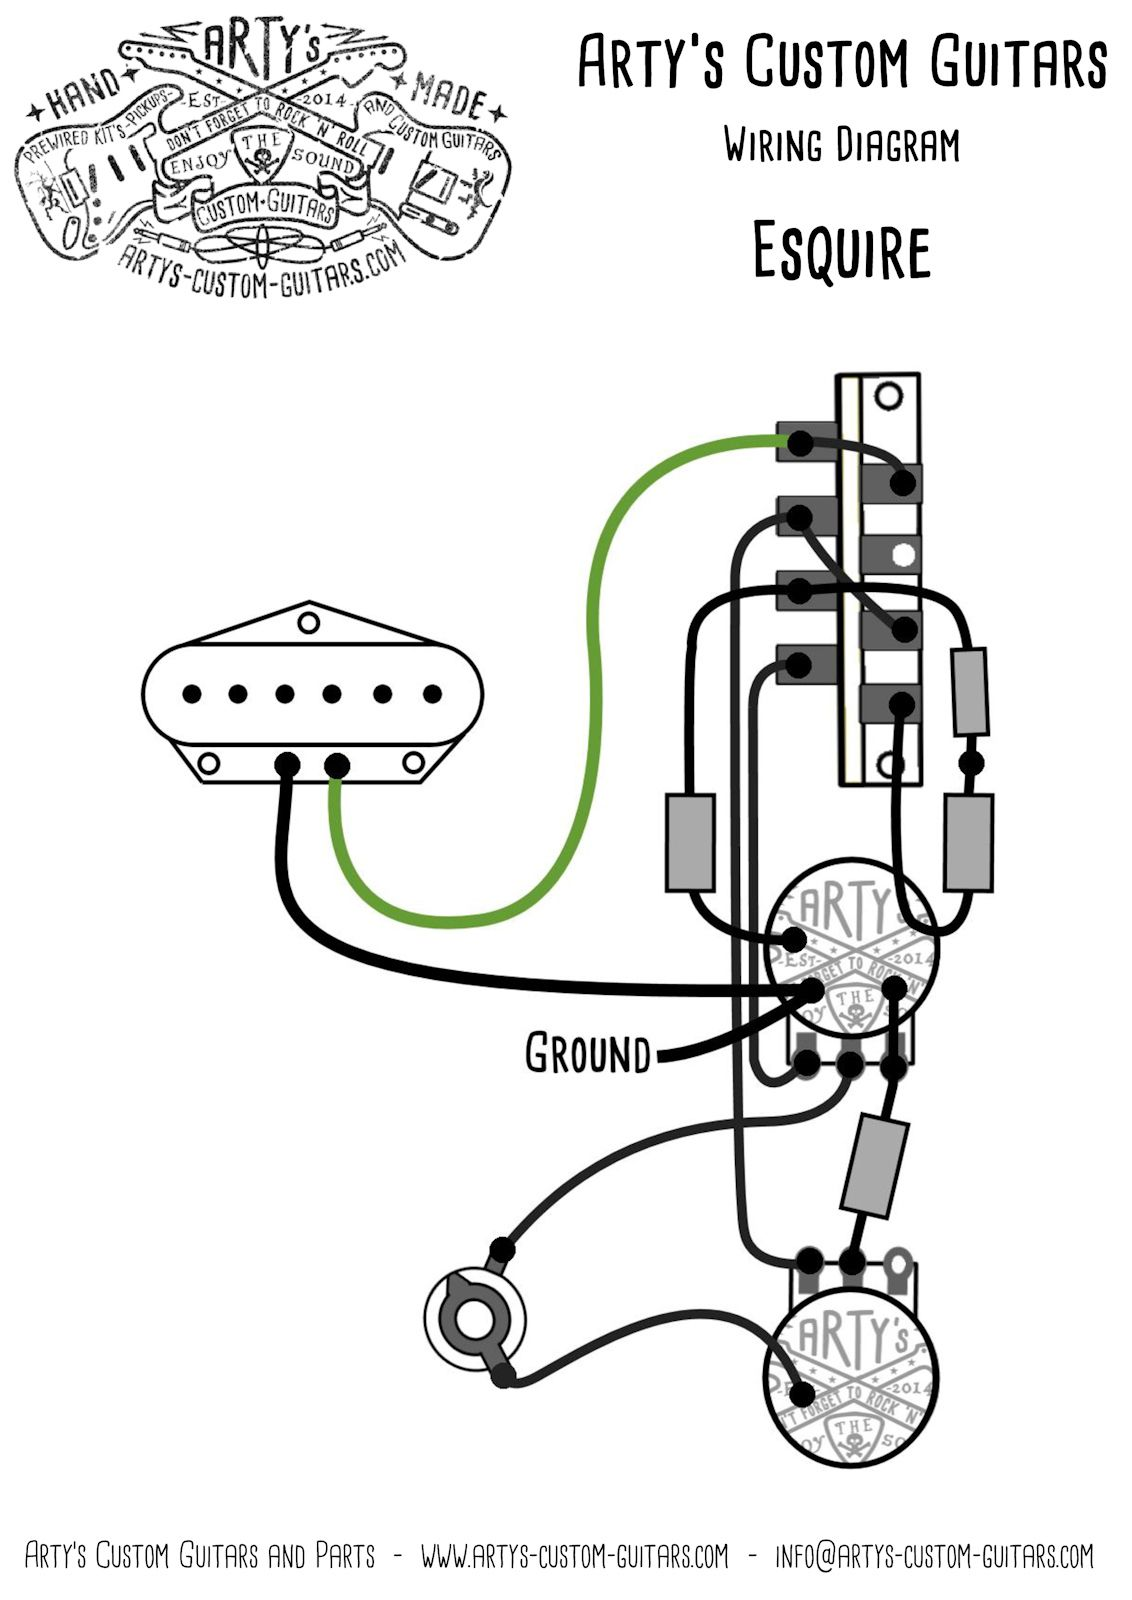 Fender Stratocaster Texas Specials Wiring Diagram